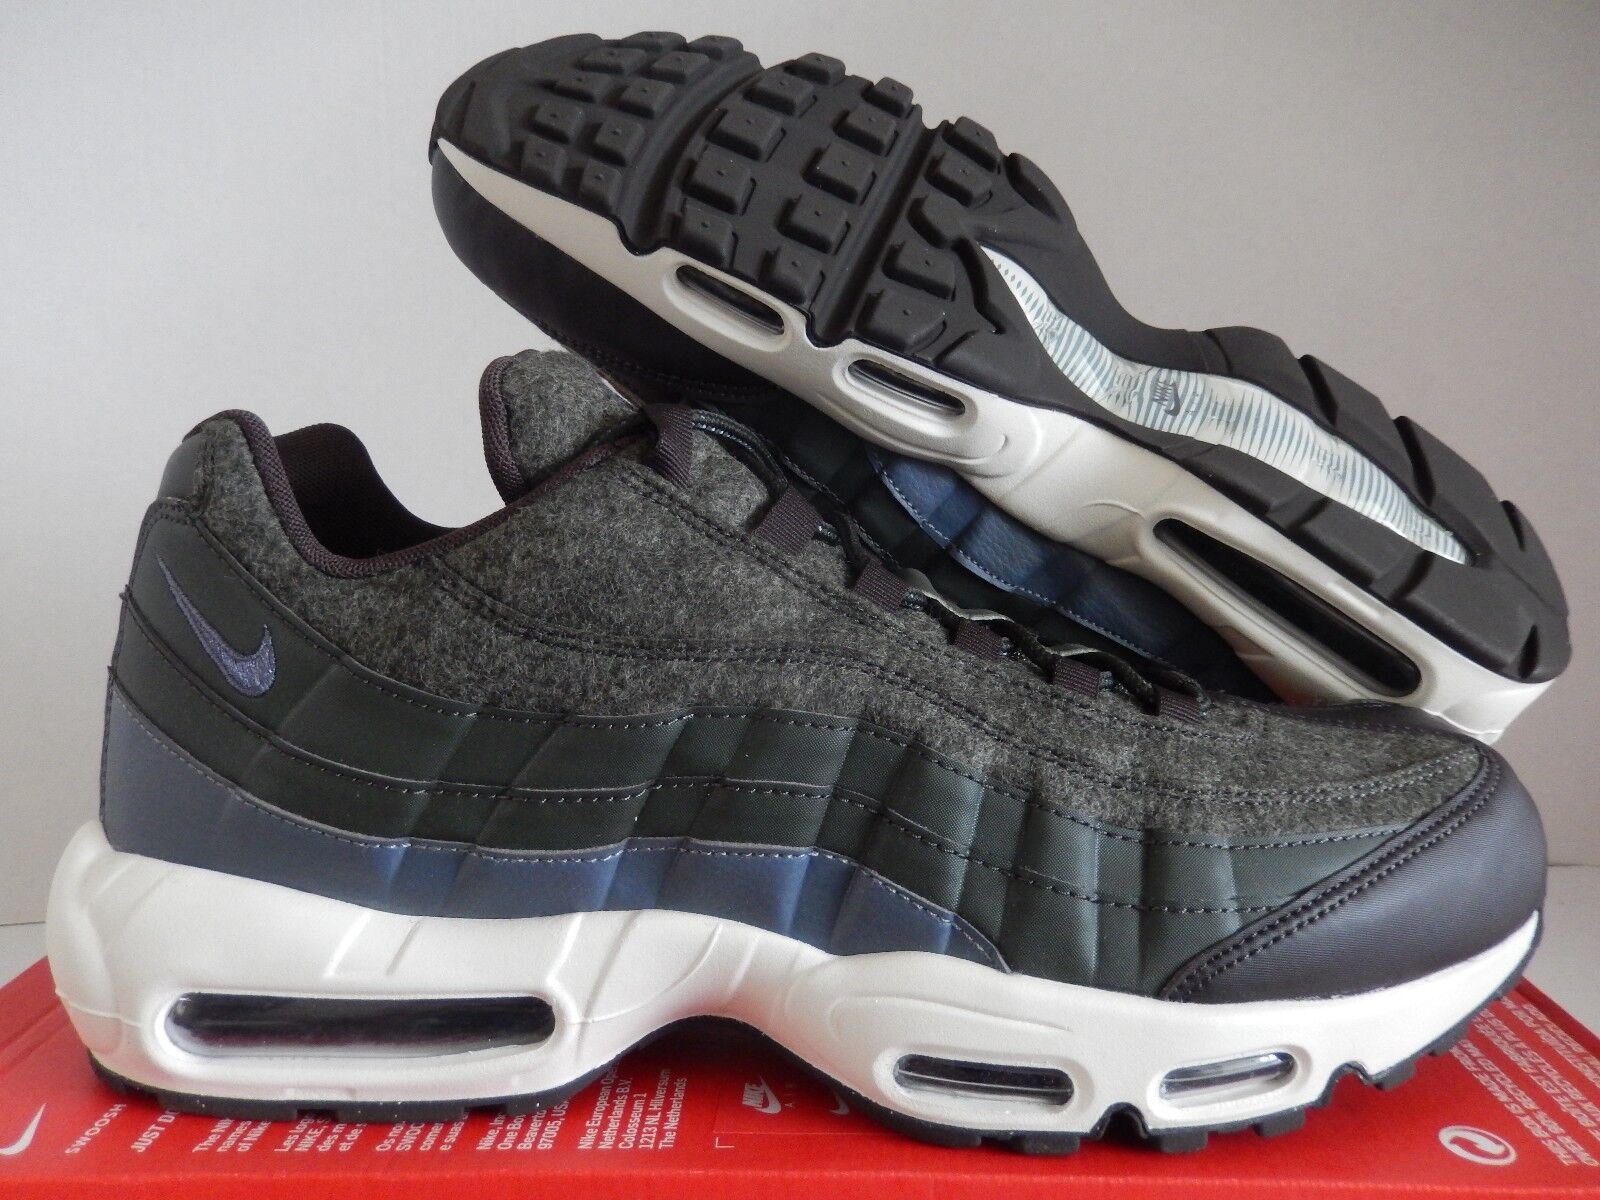 nike prm air max 95 premium prm nike sequoia-light kohlenstoff